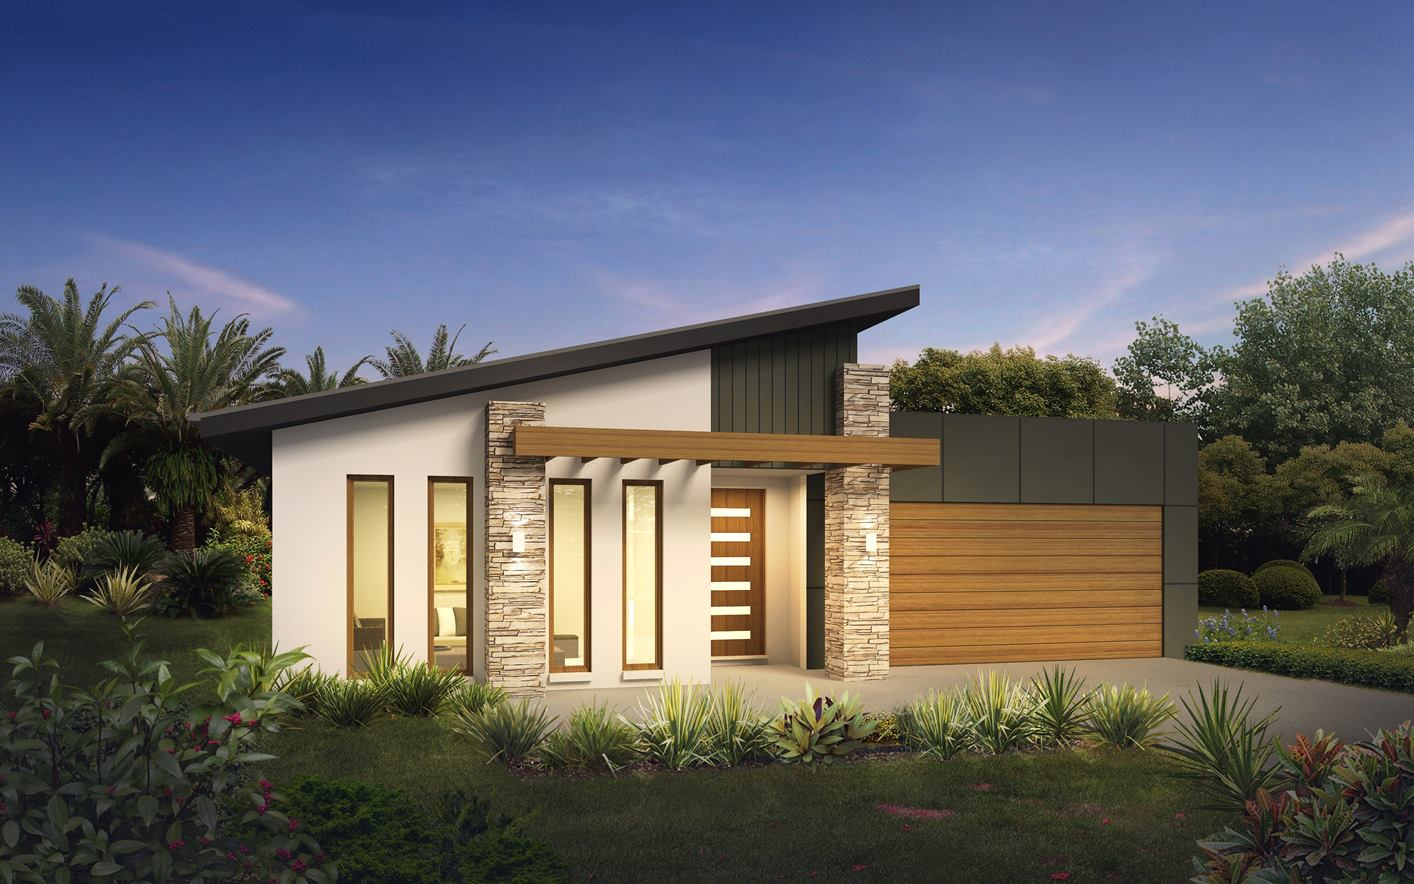 Metford 28 Home Design with Metro Facade